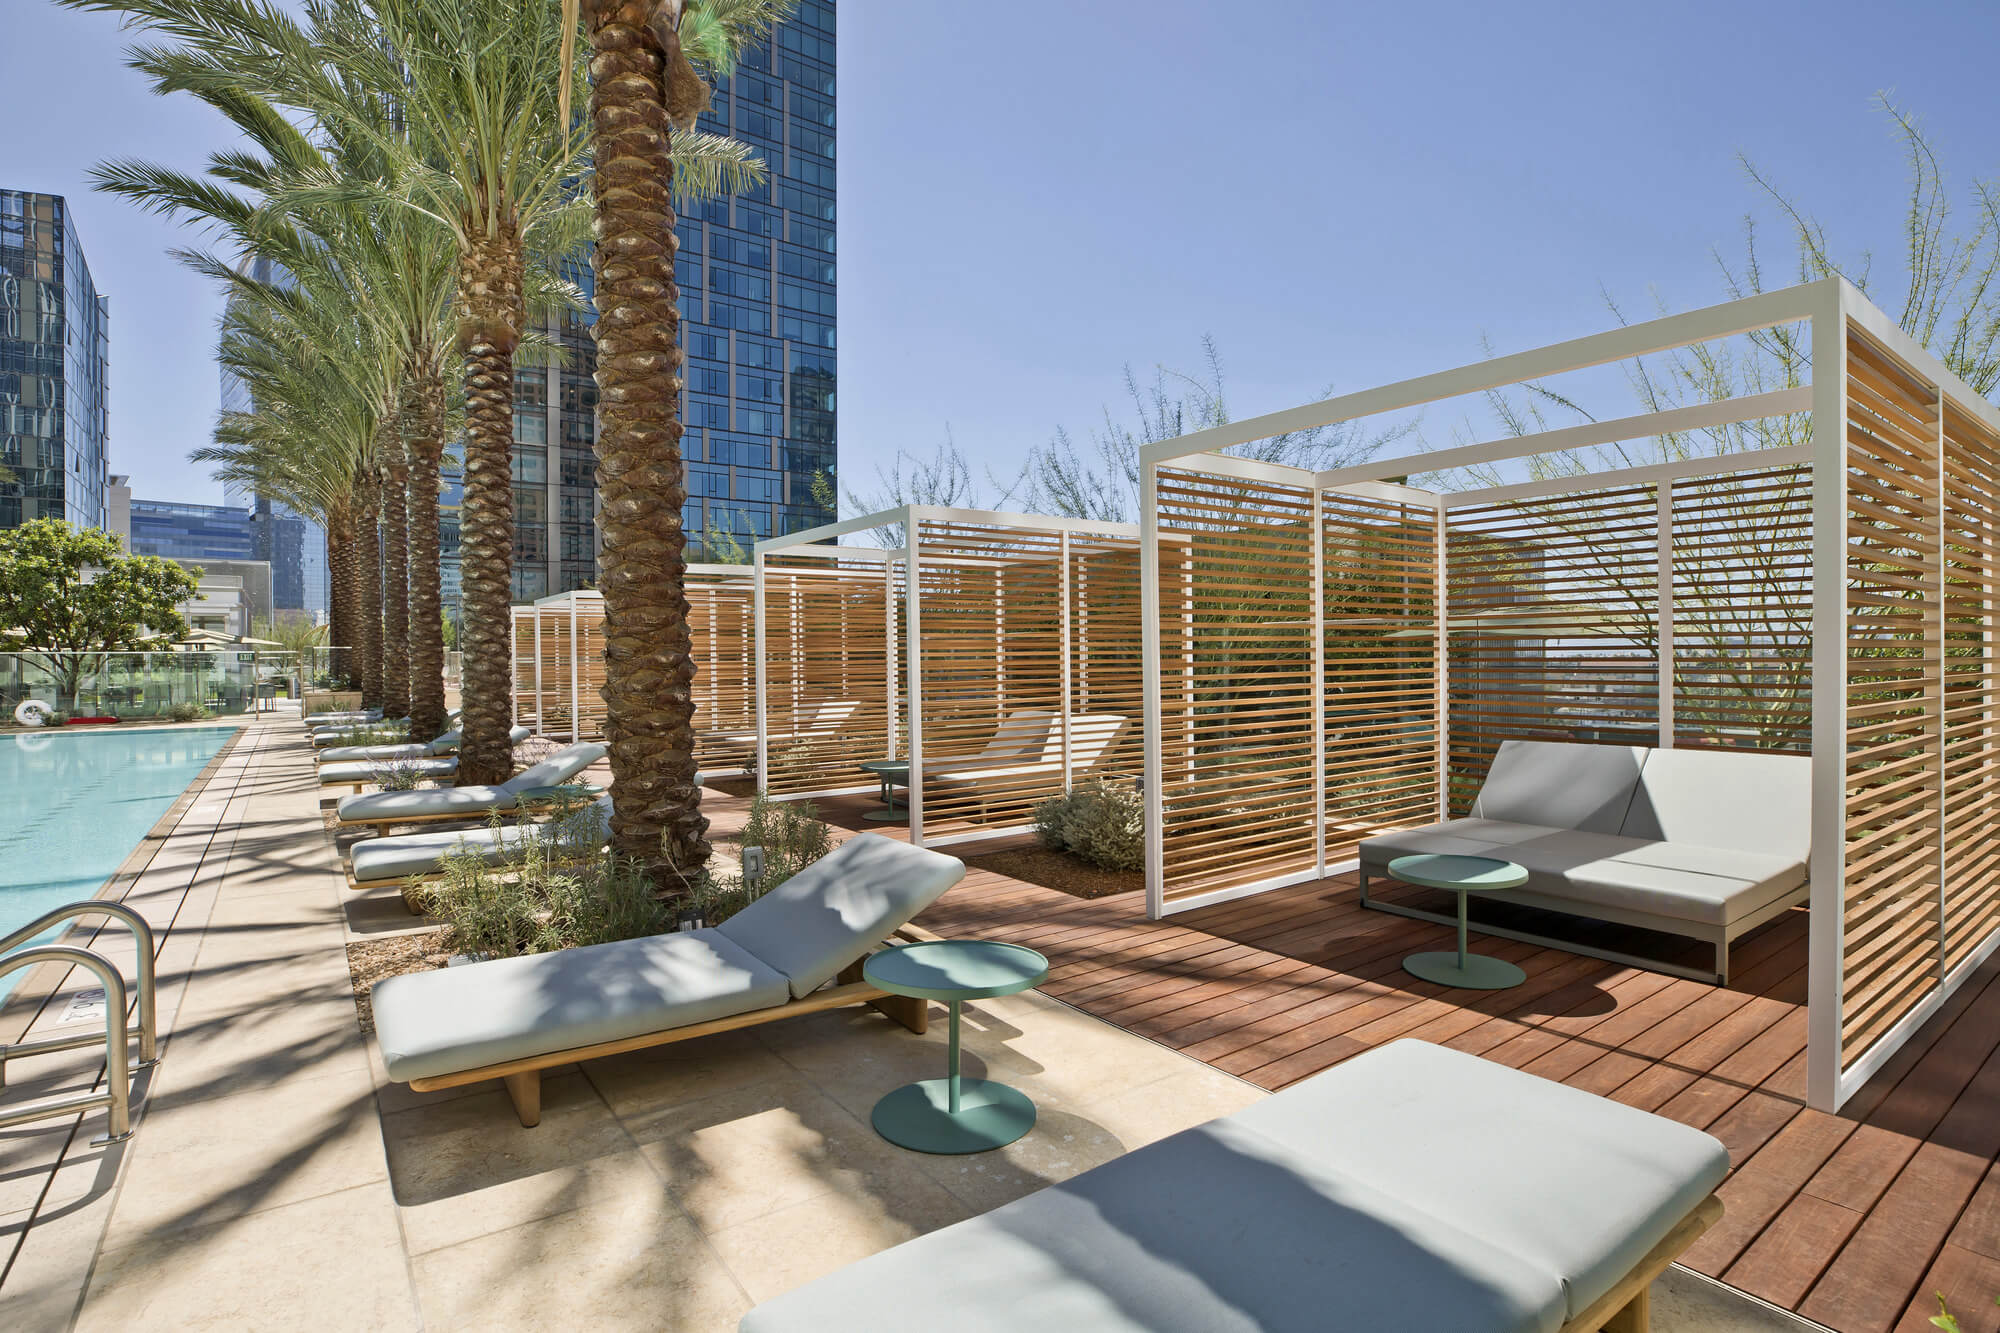 THEA Cabana poolside seating